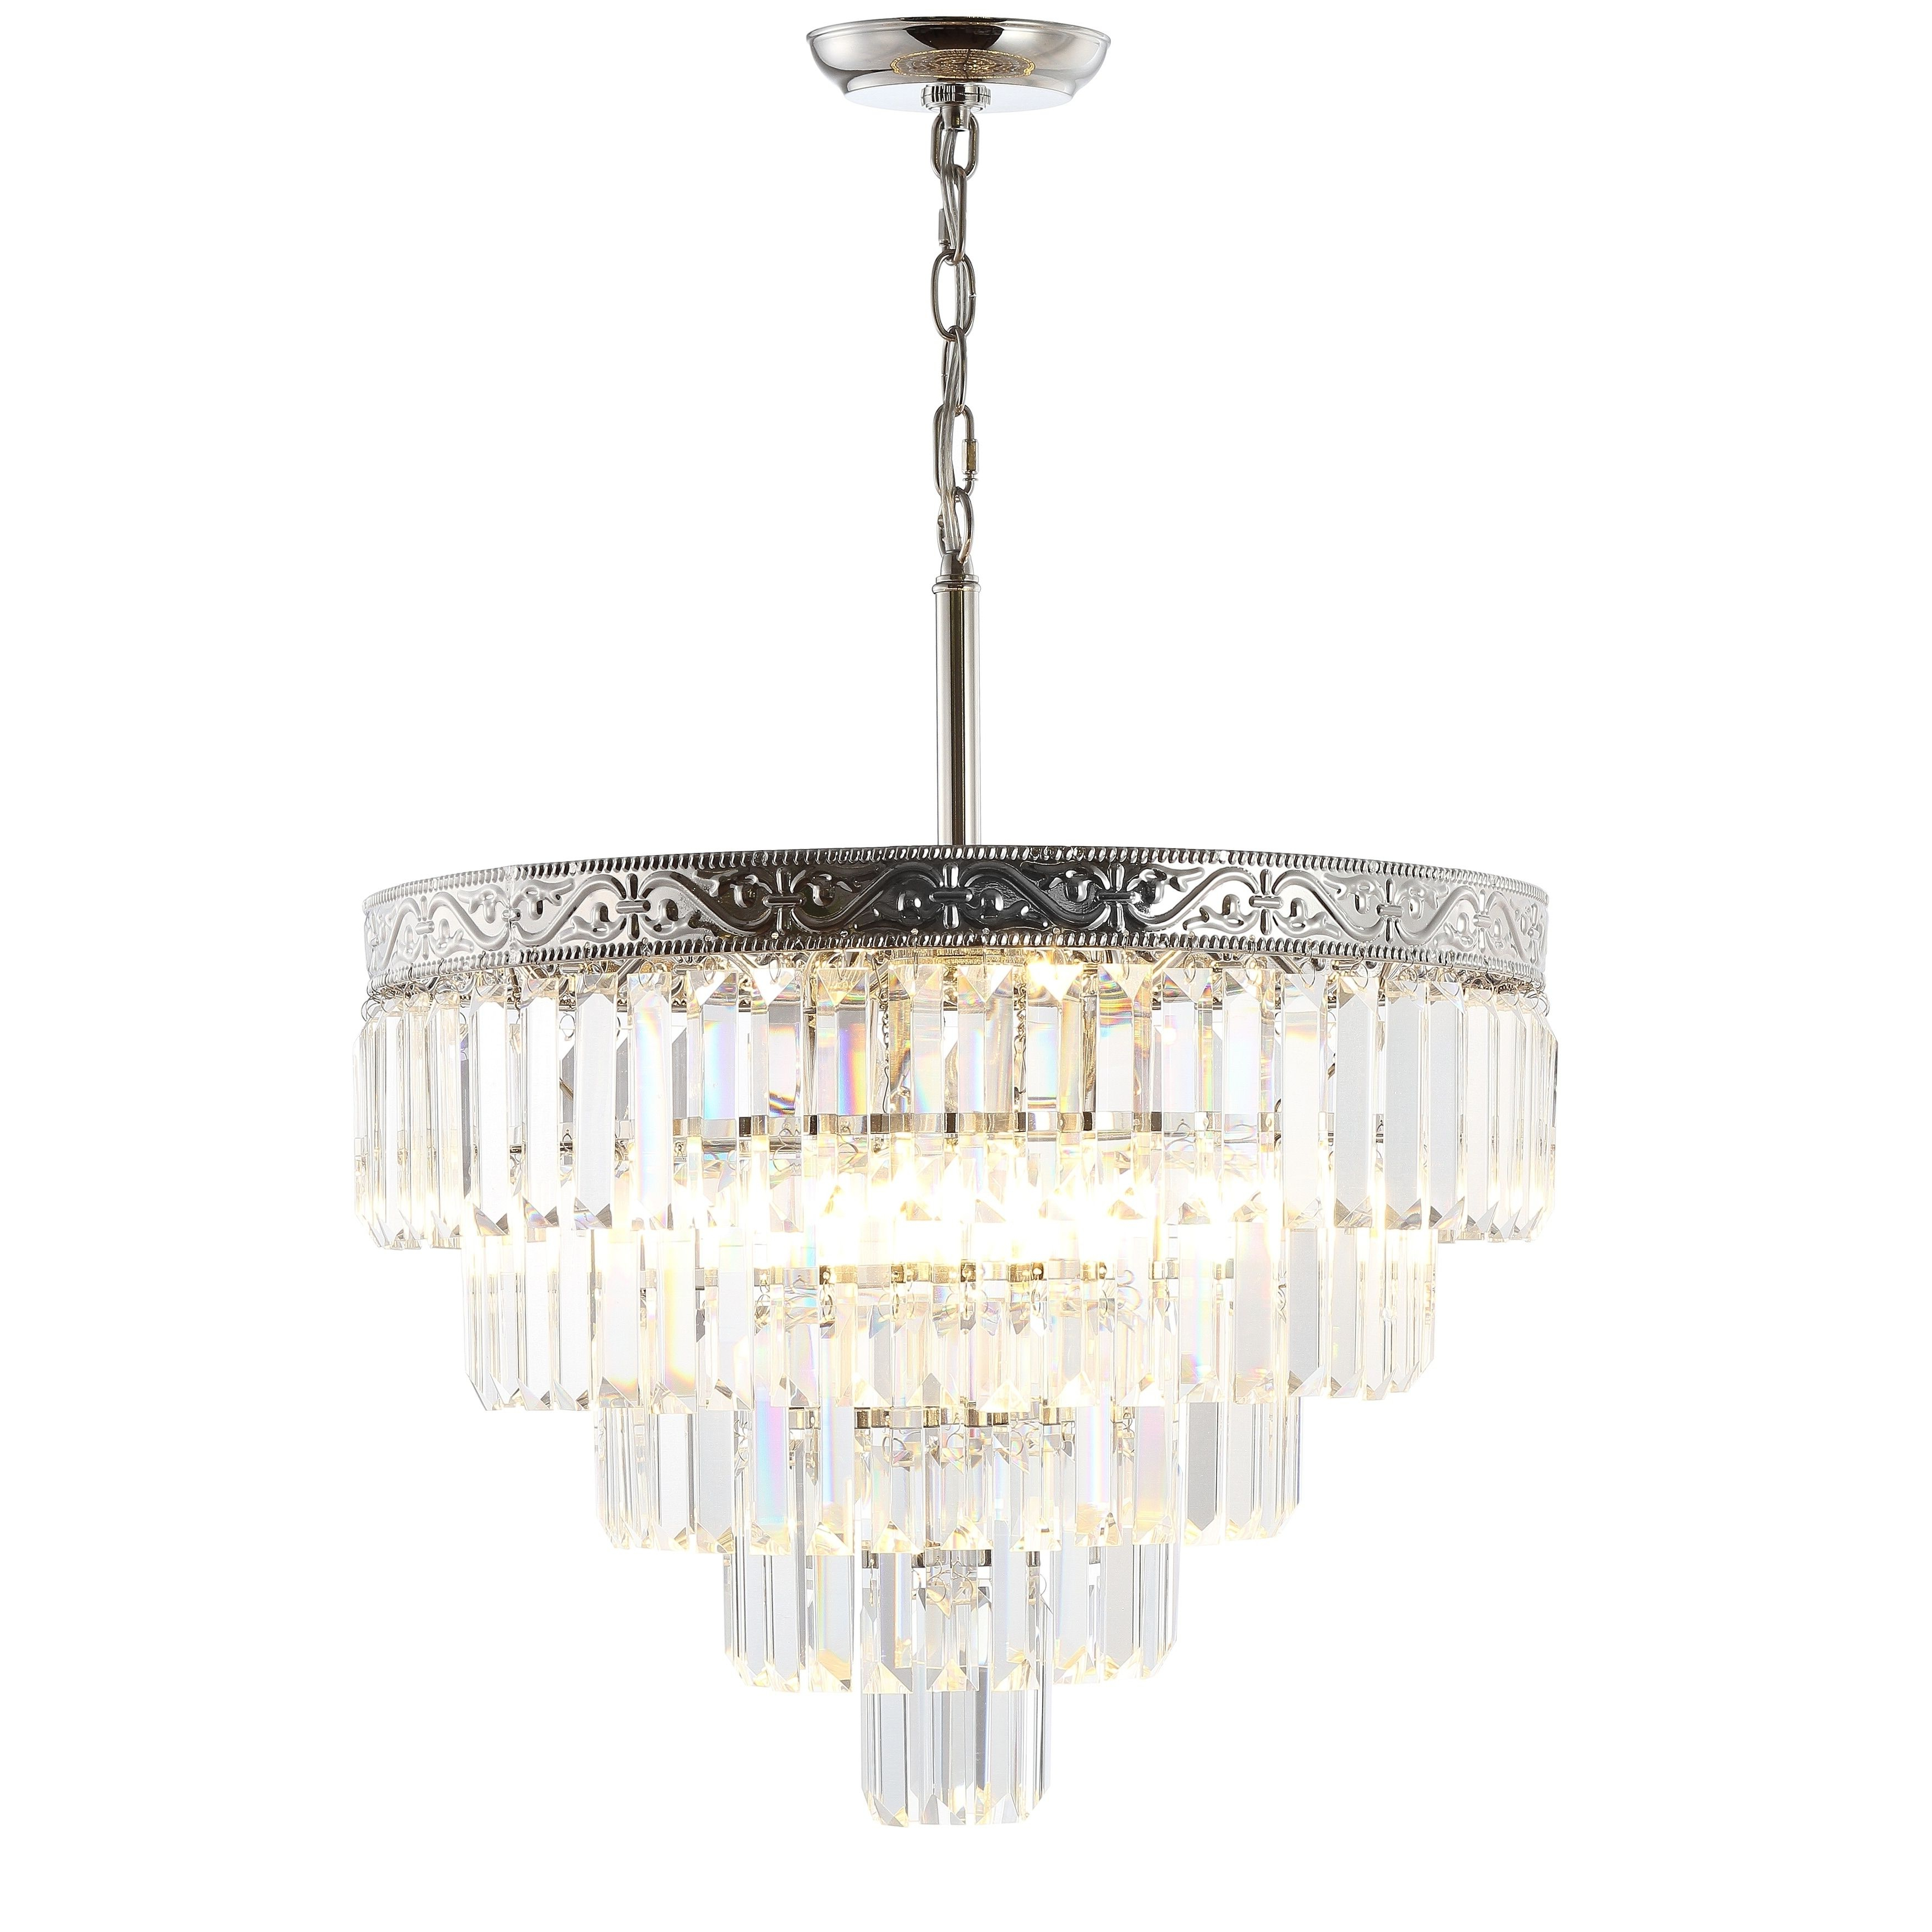 Gisselle 4 Light Drum Chandeliers Throughout Well Known Jonathan Y Wyatt 20 4 Light Crystal Led Chandelier, Polished (Gallery 19 of 20)